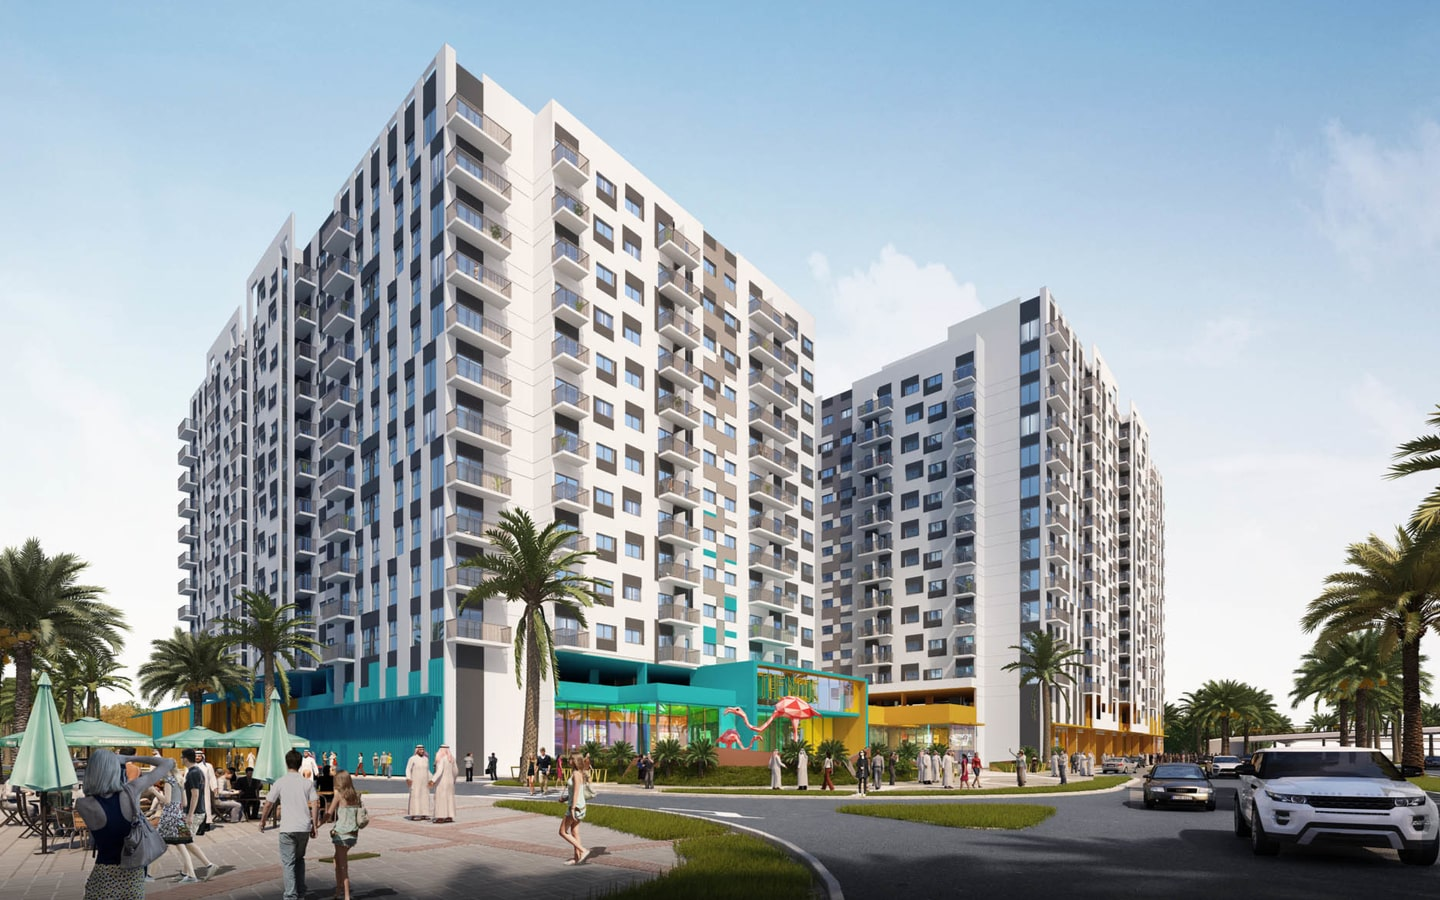 View of The Nook apartment buildings, one of the upcoming projects in Expo 2020